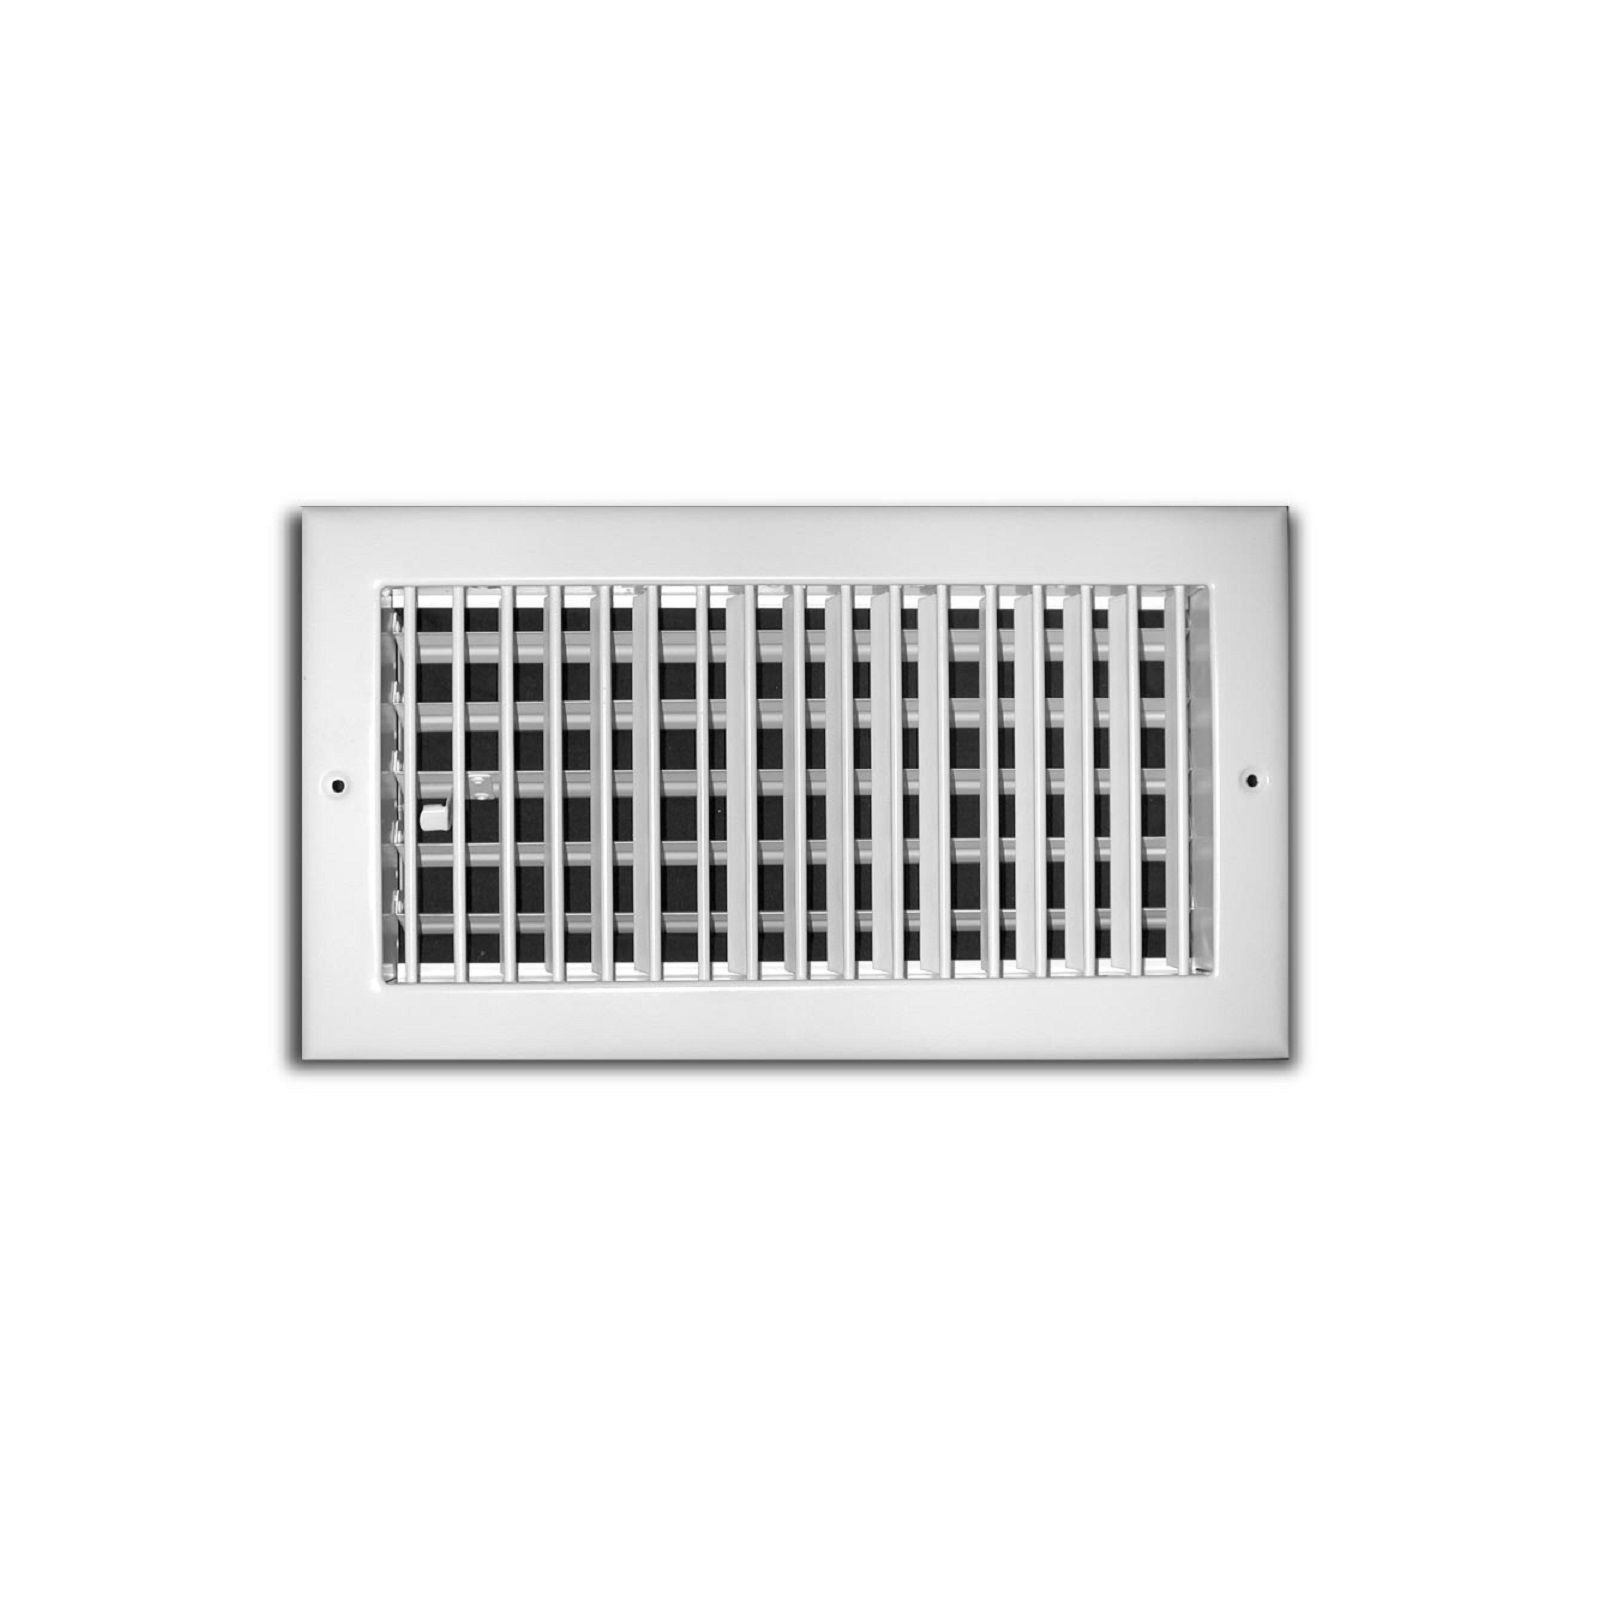 "TRUaire 210VM 12X06 - Steel Adjustable 1-Way Wall/Ceiling Register With Multi Shutter Damper, White, 12"" X 06"""